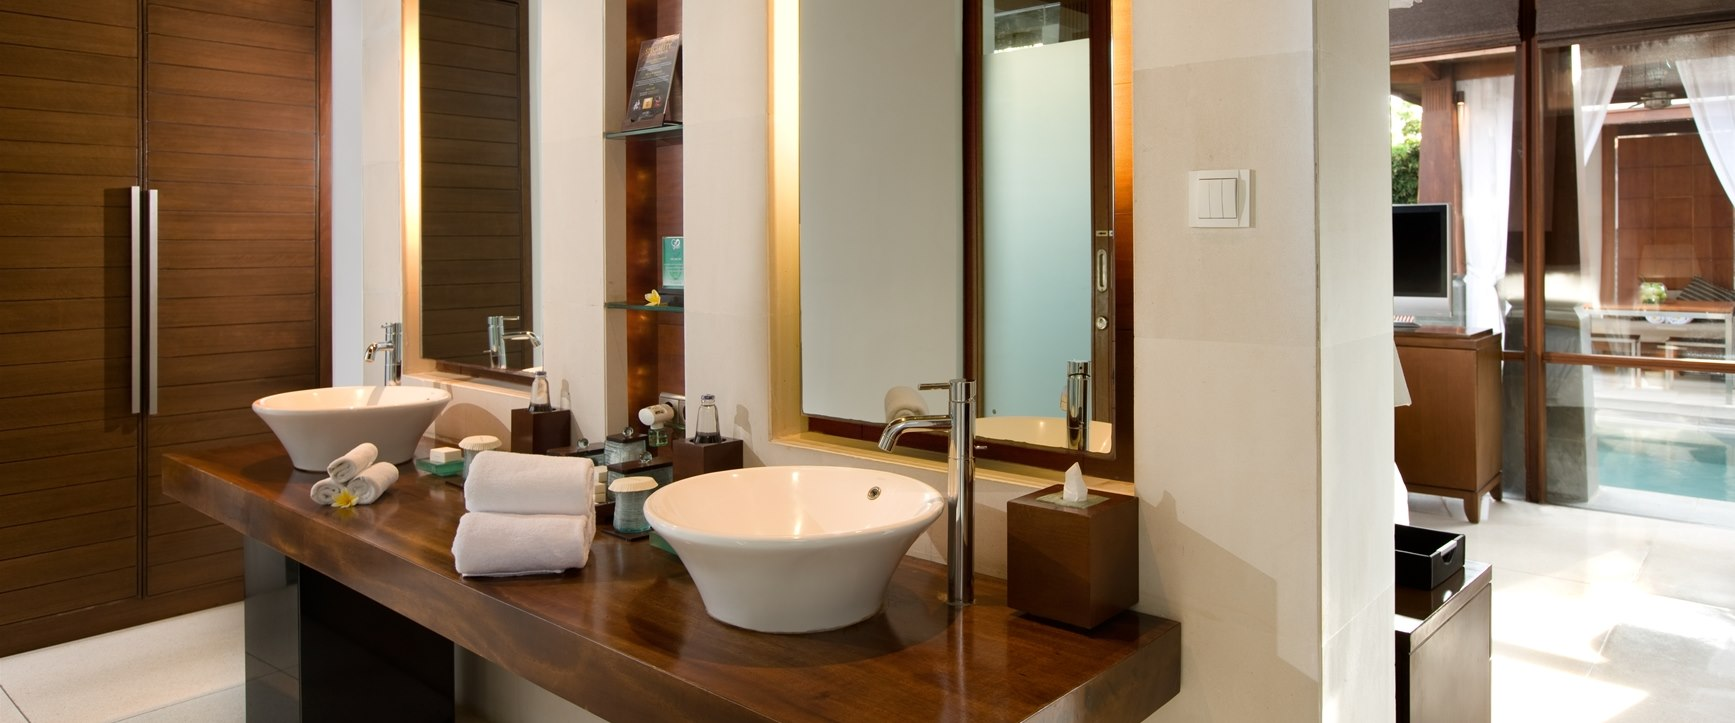 Amenities at at The Kayana, Bali